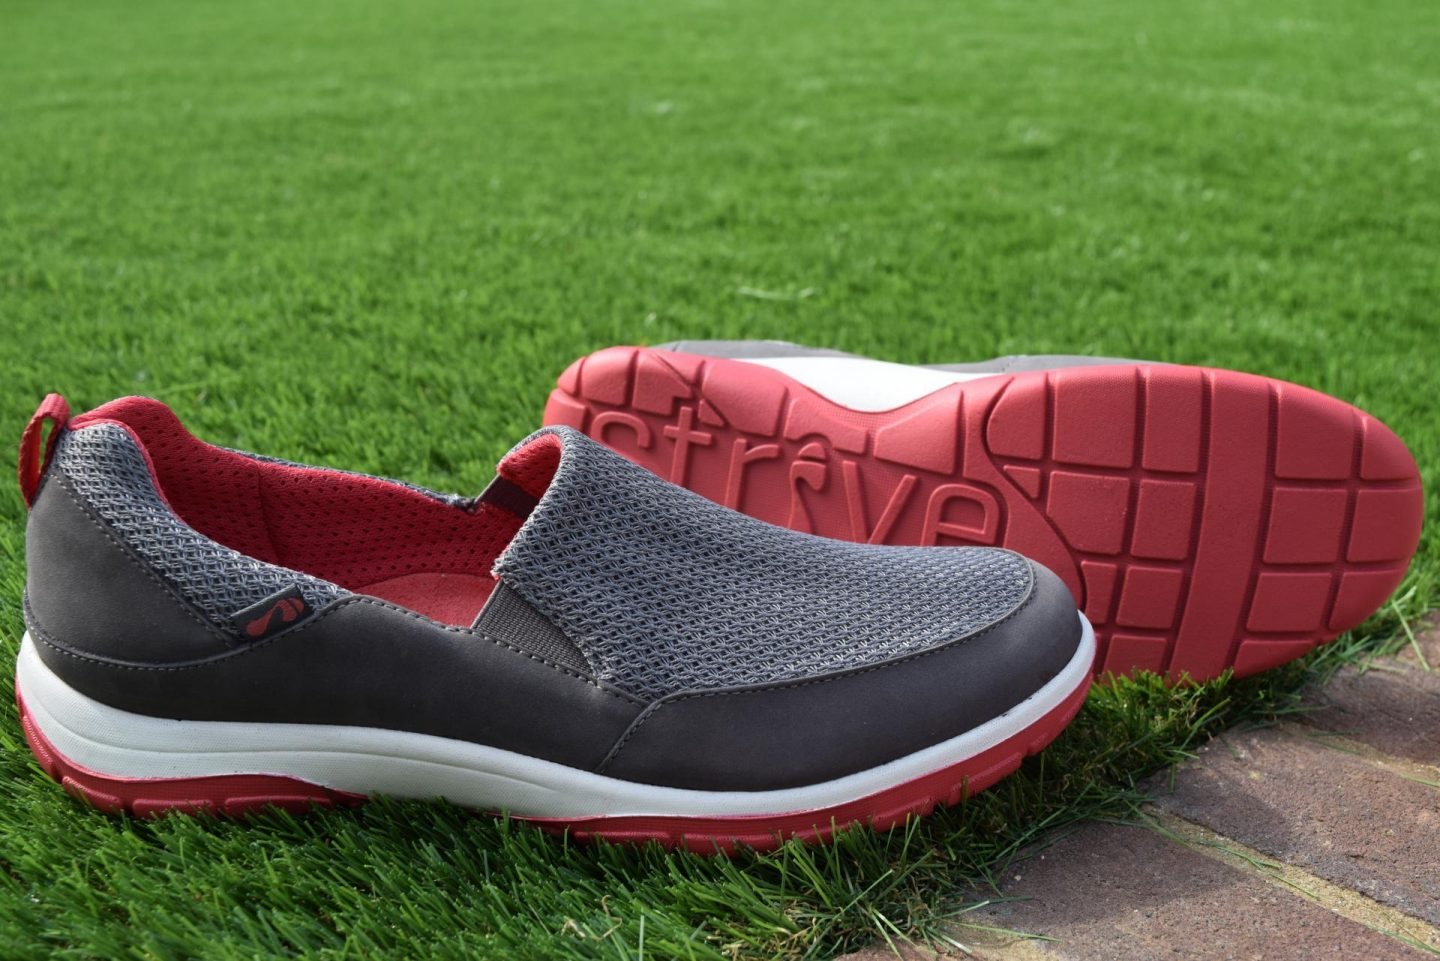 Review | Strive Florida shoes